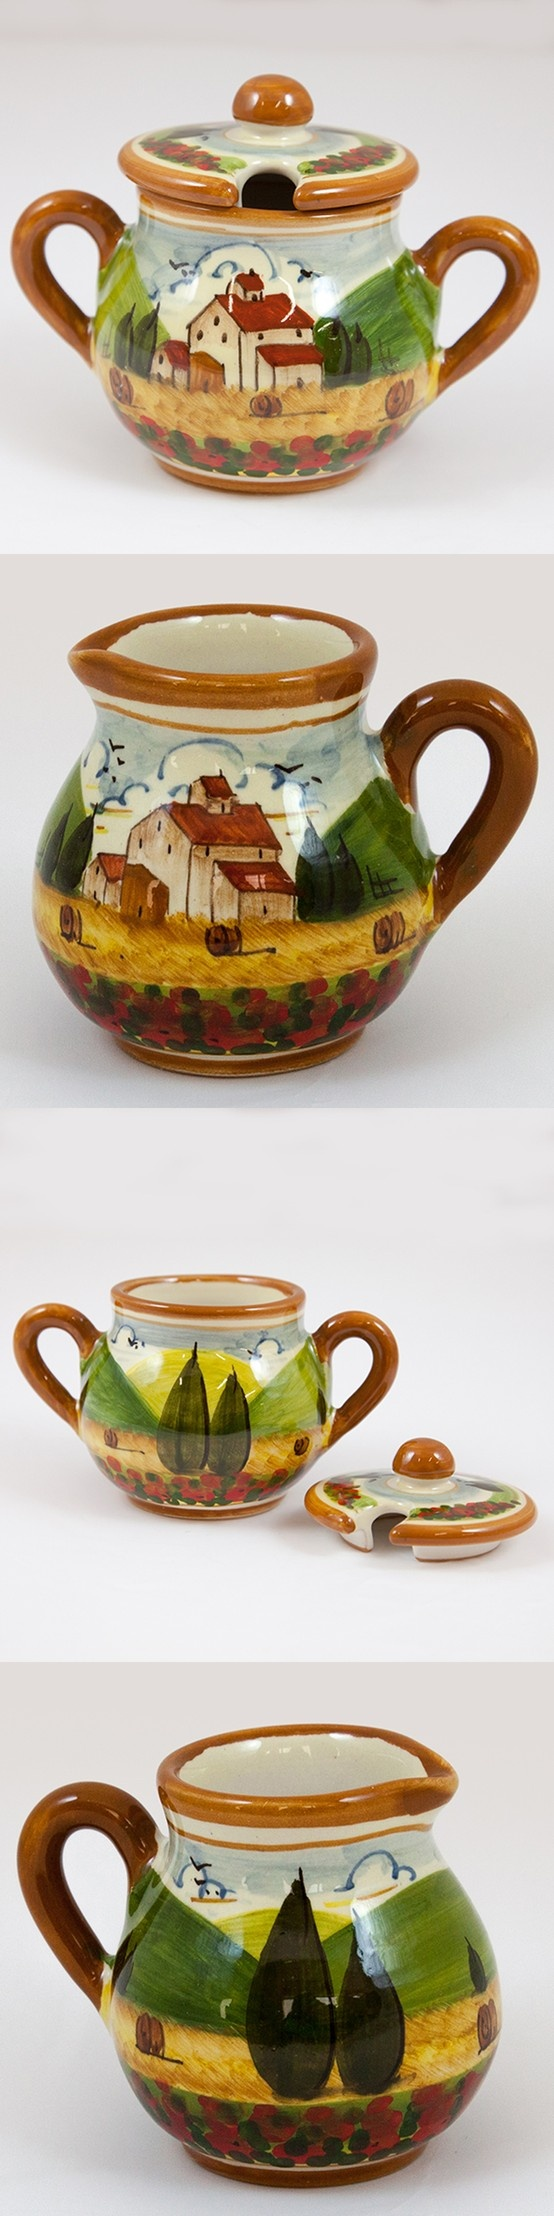 Ceramic sugar bowl ($50.99) and creamer ($38.49) decorated with the Tuscan landscape pattern. Adorned with poppies and evergreens on an earth tone background with a brown border. Hand painted, hand glazed and fired in Tuscany. Follow this link to see all our products in Tuscan Landscape pattern: http://www.pietrafittaimports.com/ceramics.html?design_pattern=279